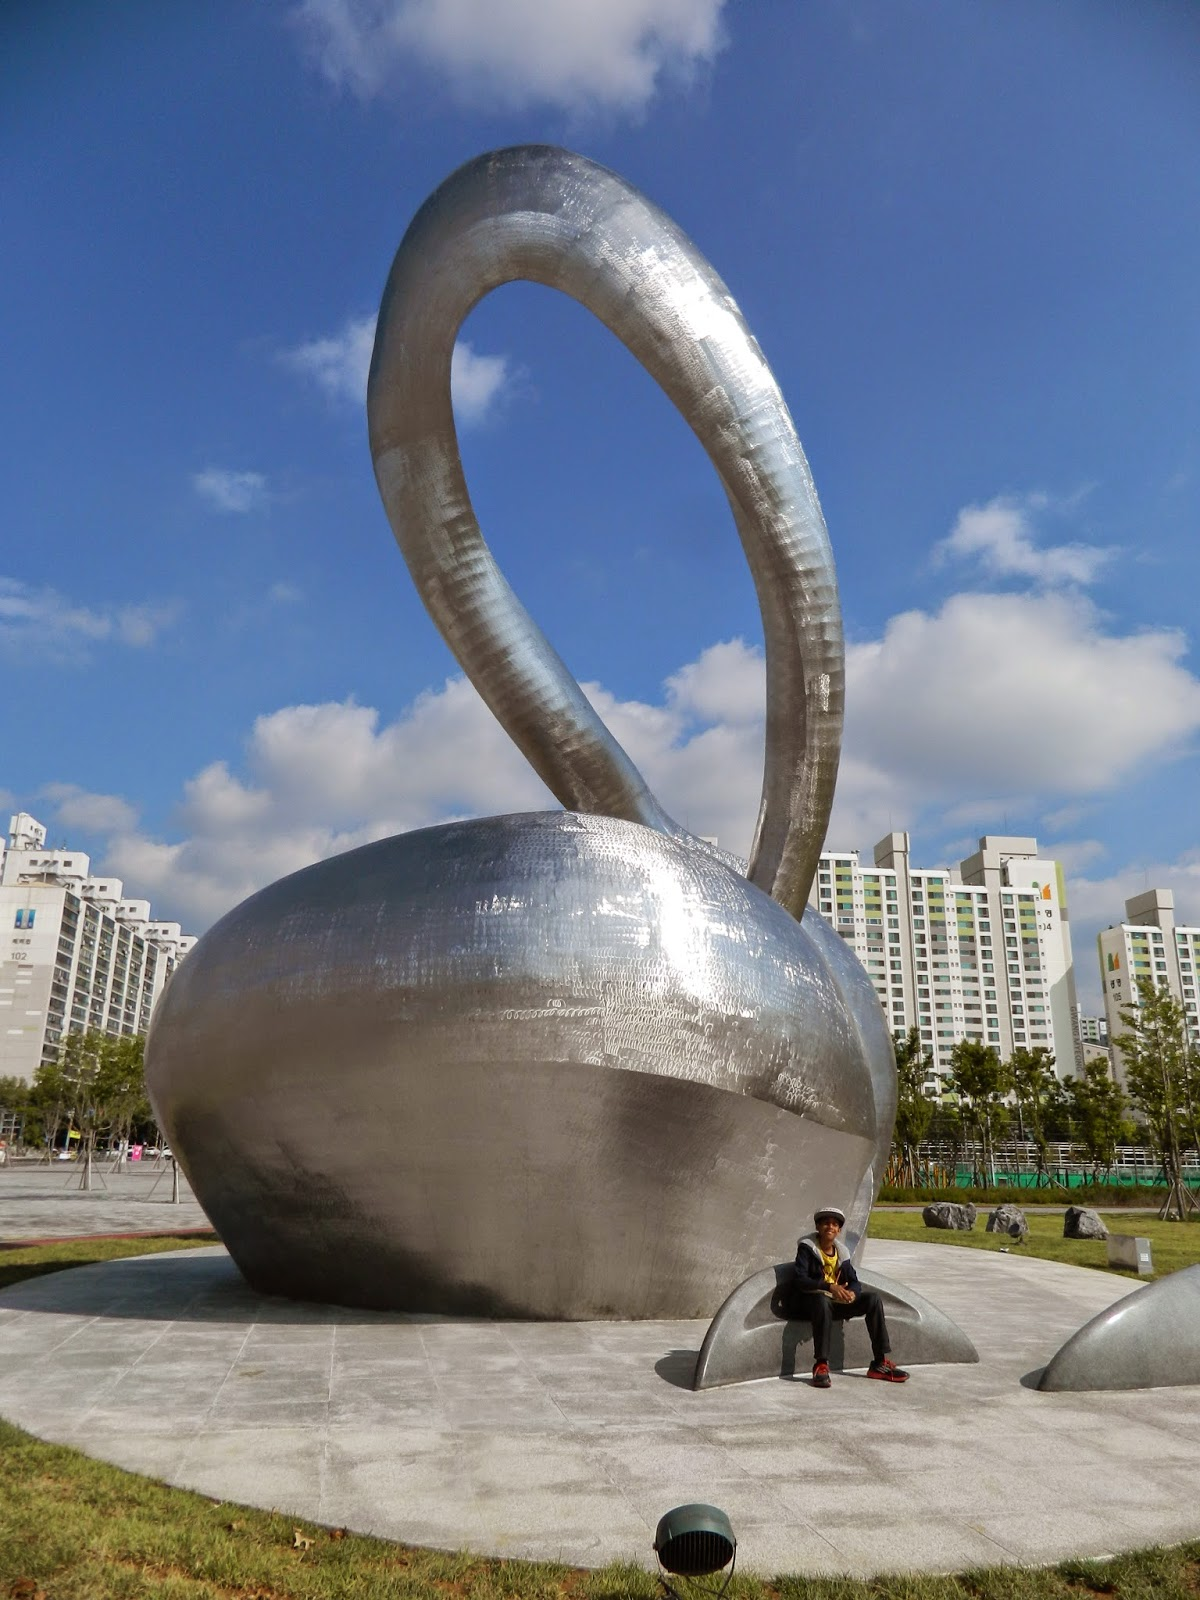 yet another art piece at the Incheon main stadium